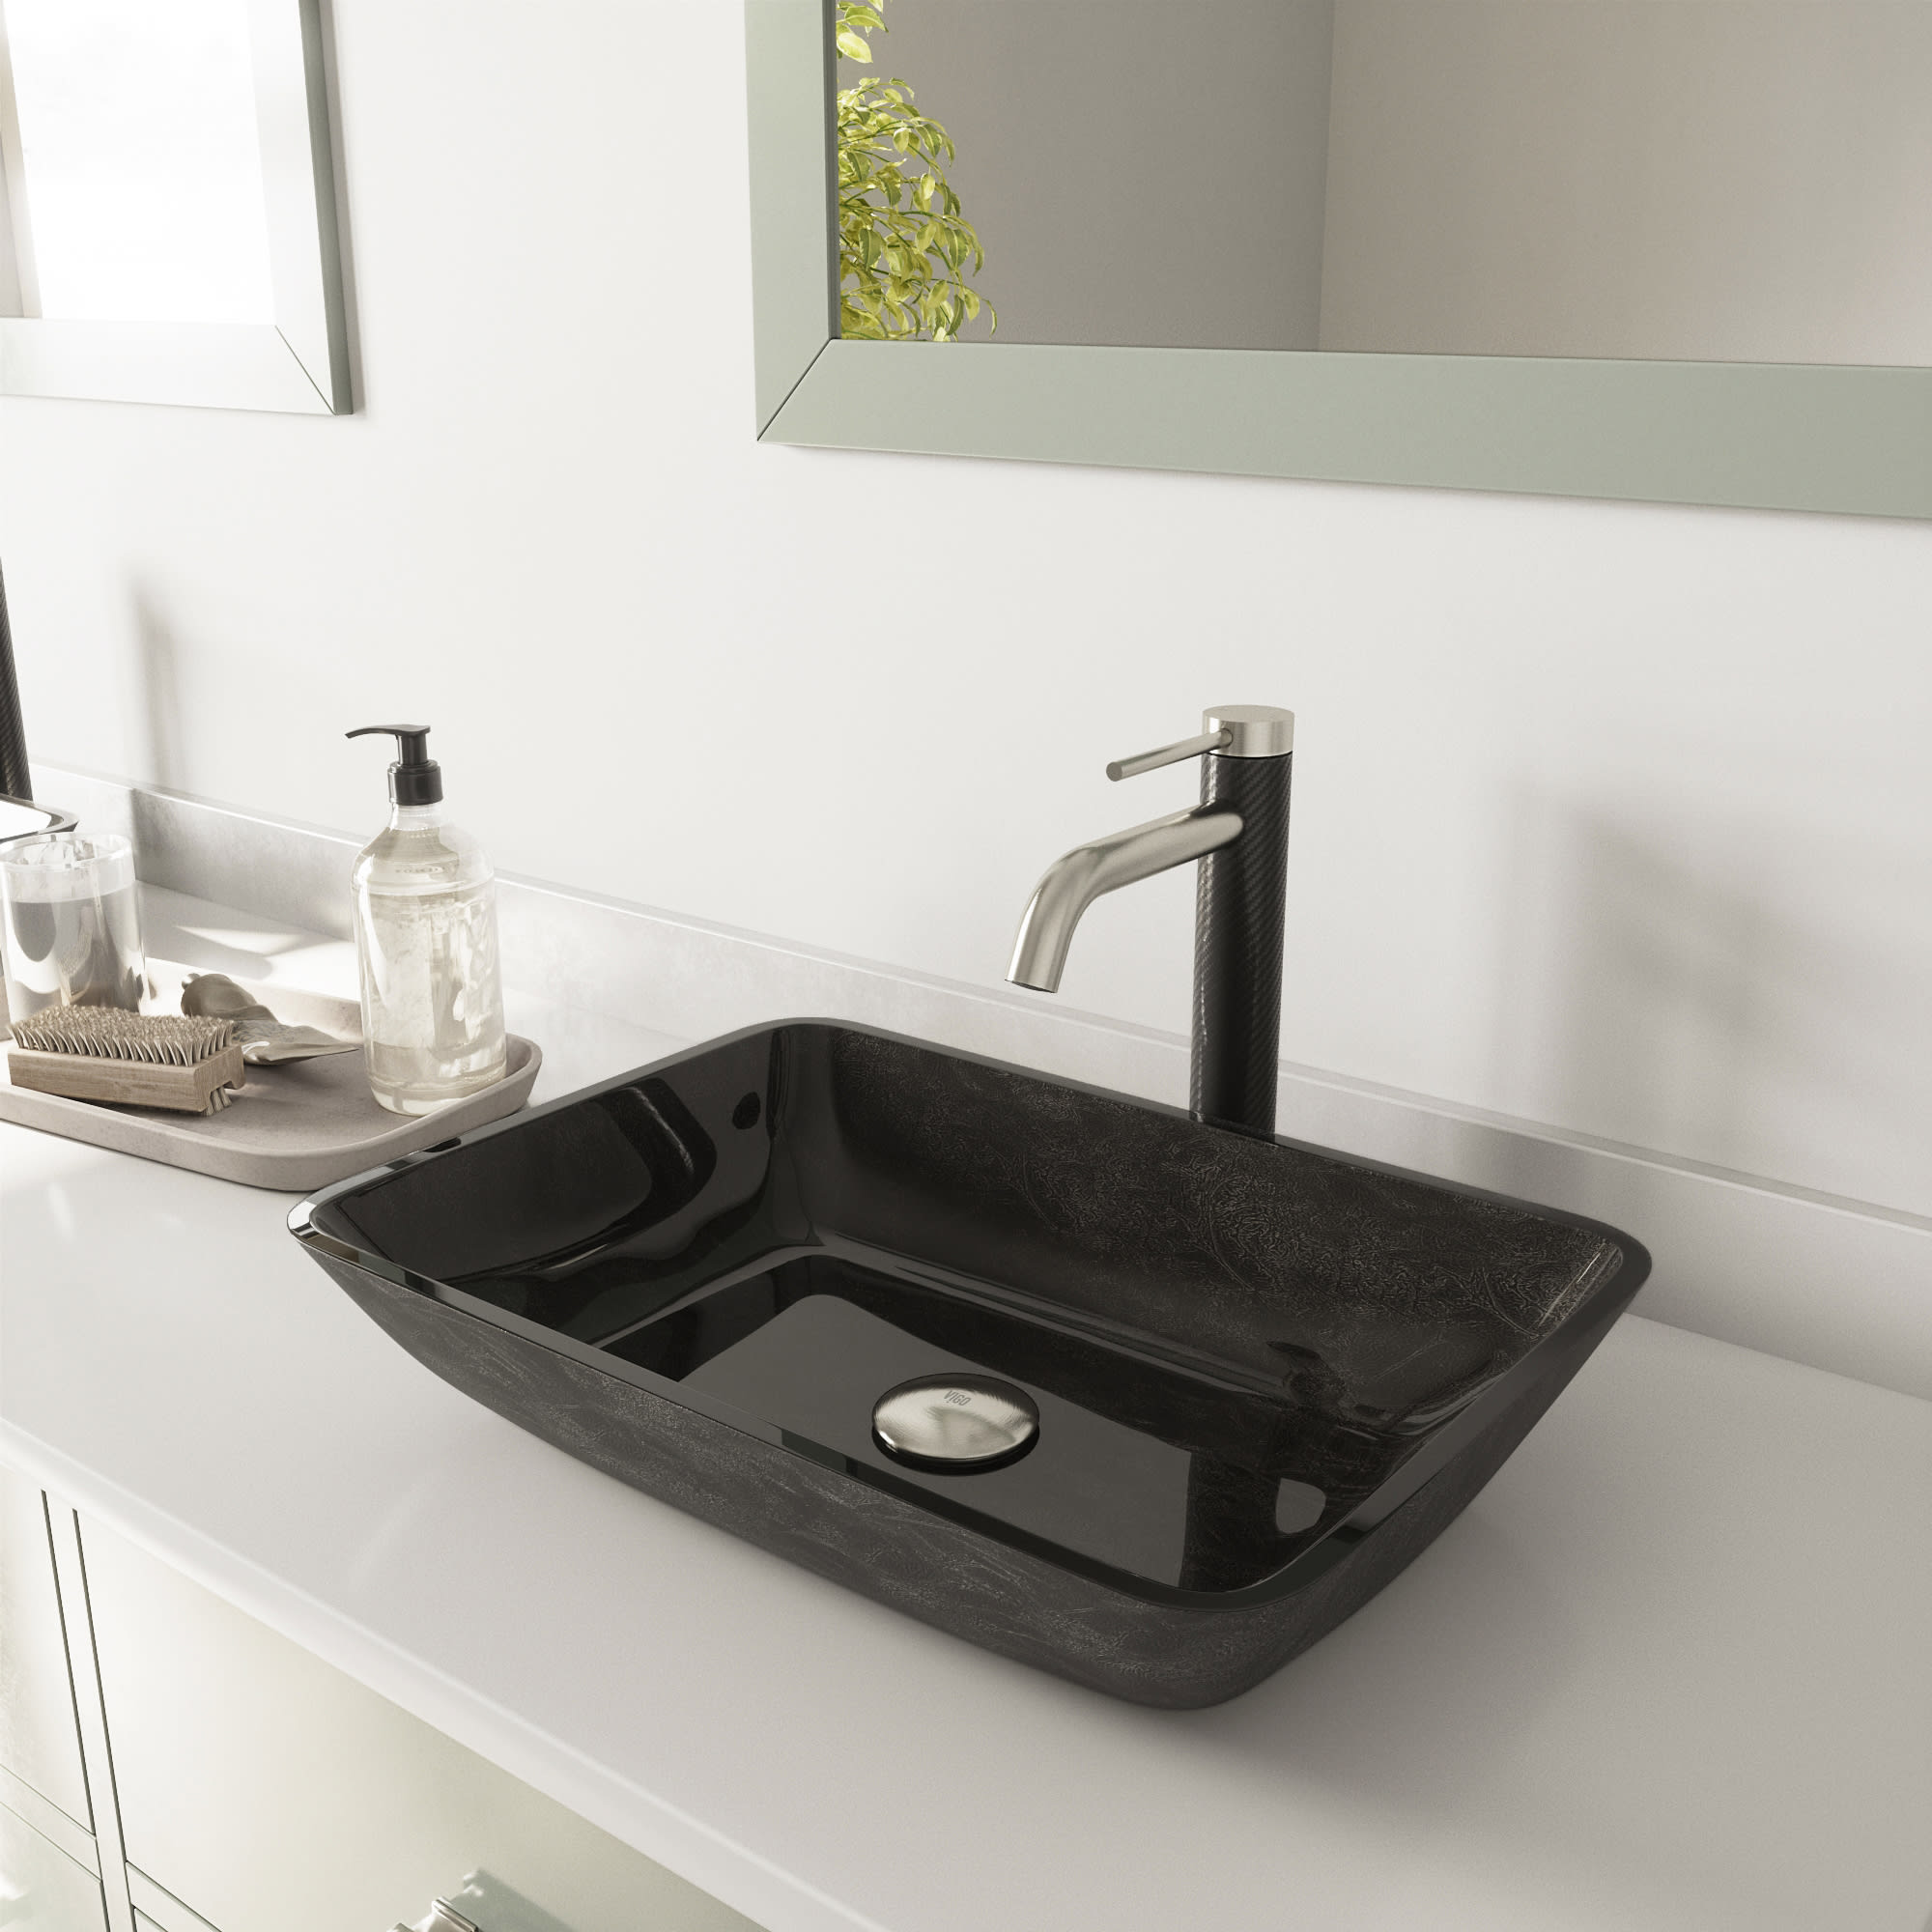 Vigo Vgt1438 Brushed Nickel Onyx 13 Vessel Bathroom Sink With 1 2 Gpm Deck Mounted Bathroom Faucet And Pop Up Drain Assembly Faucet Com